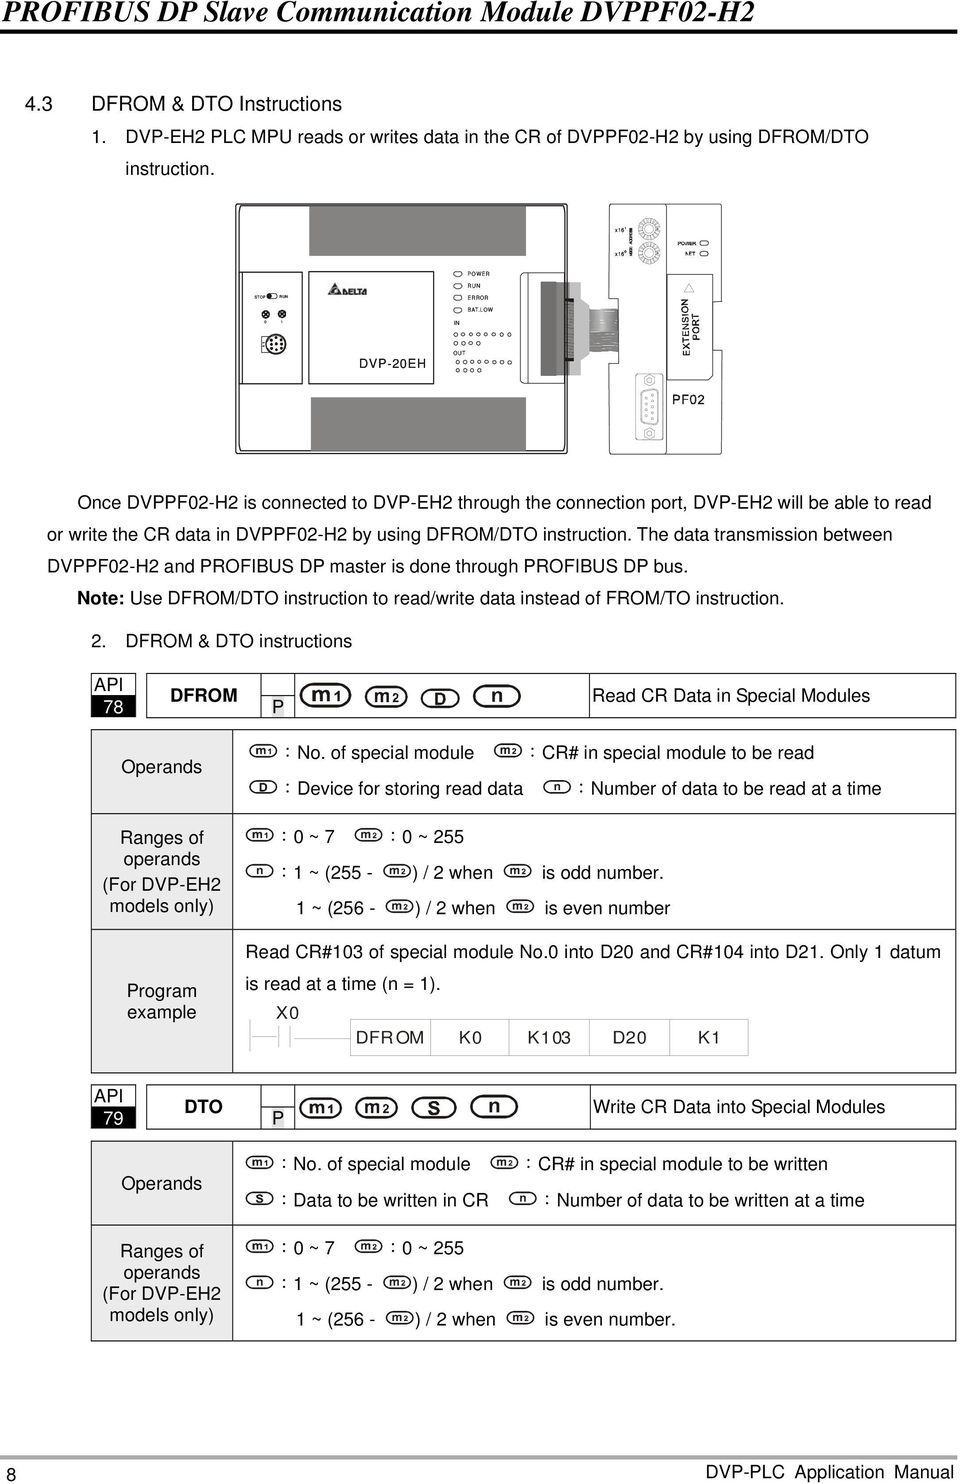 DVPPF02-H2  PROFIBUS DP Slave Communication Module Application